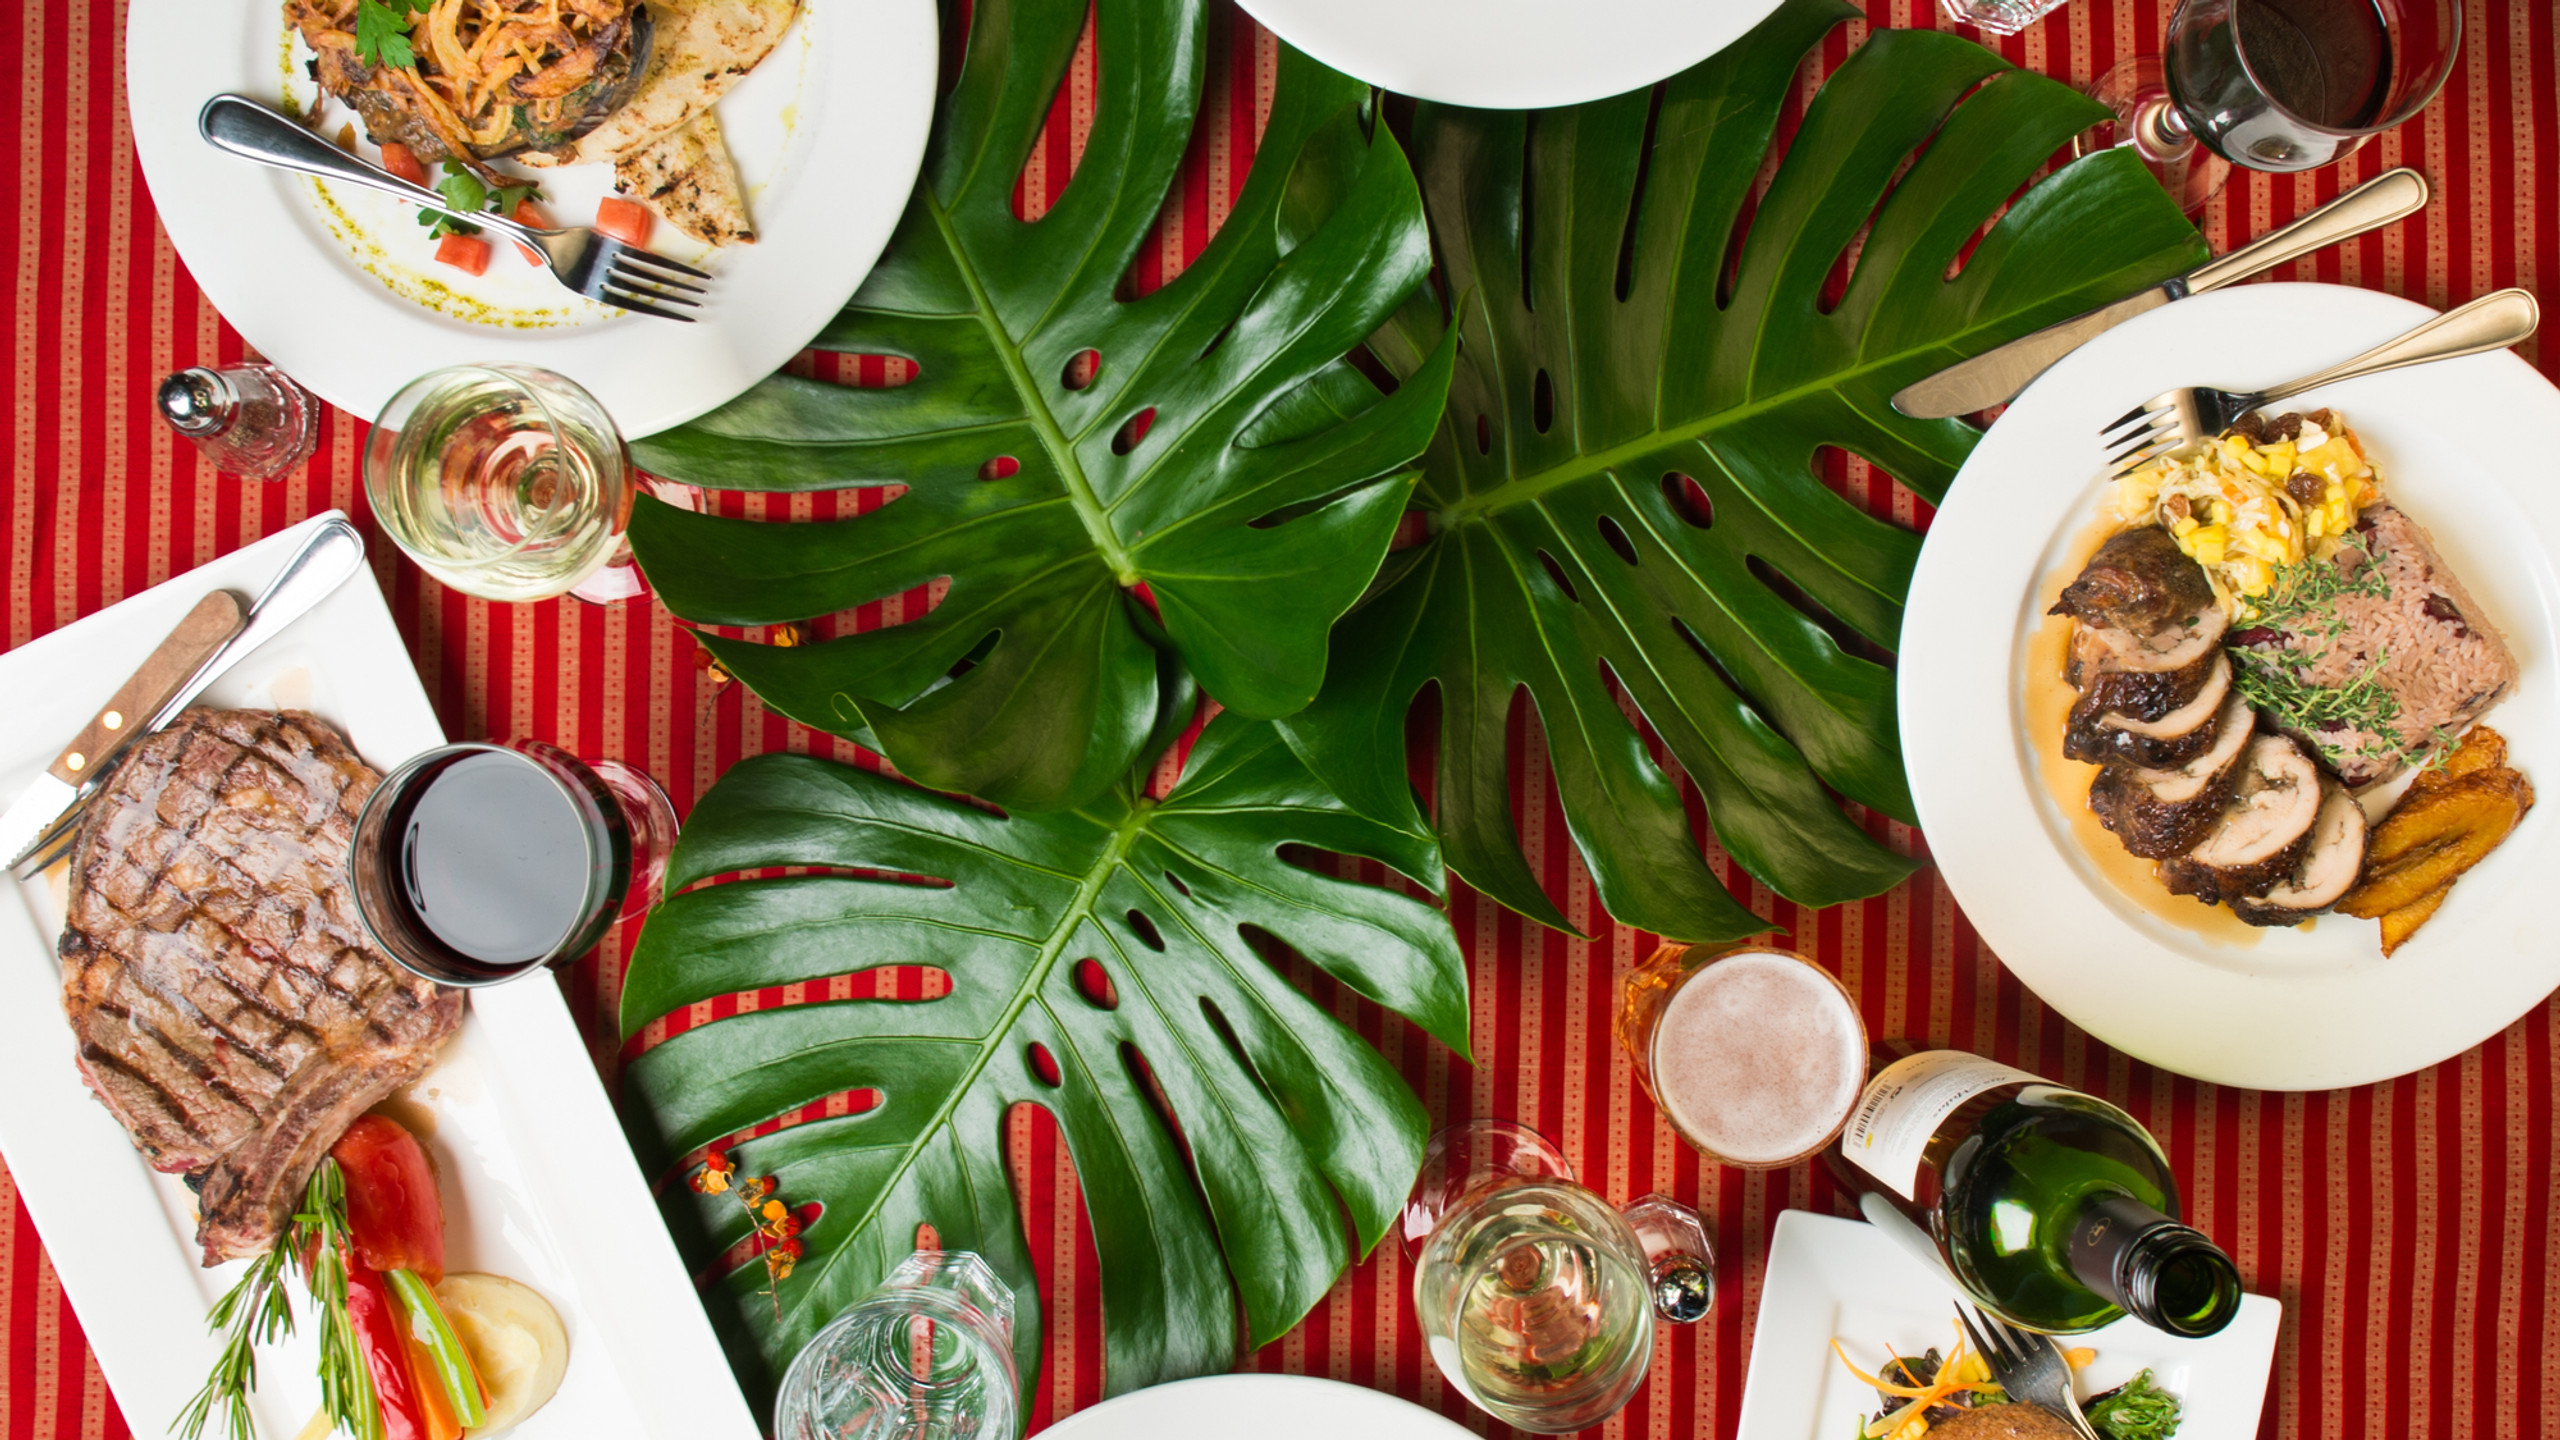 Tropical Dinner Prix Fixe Lula Loung